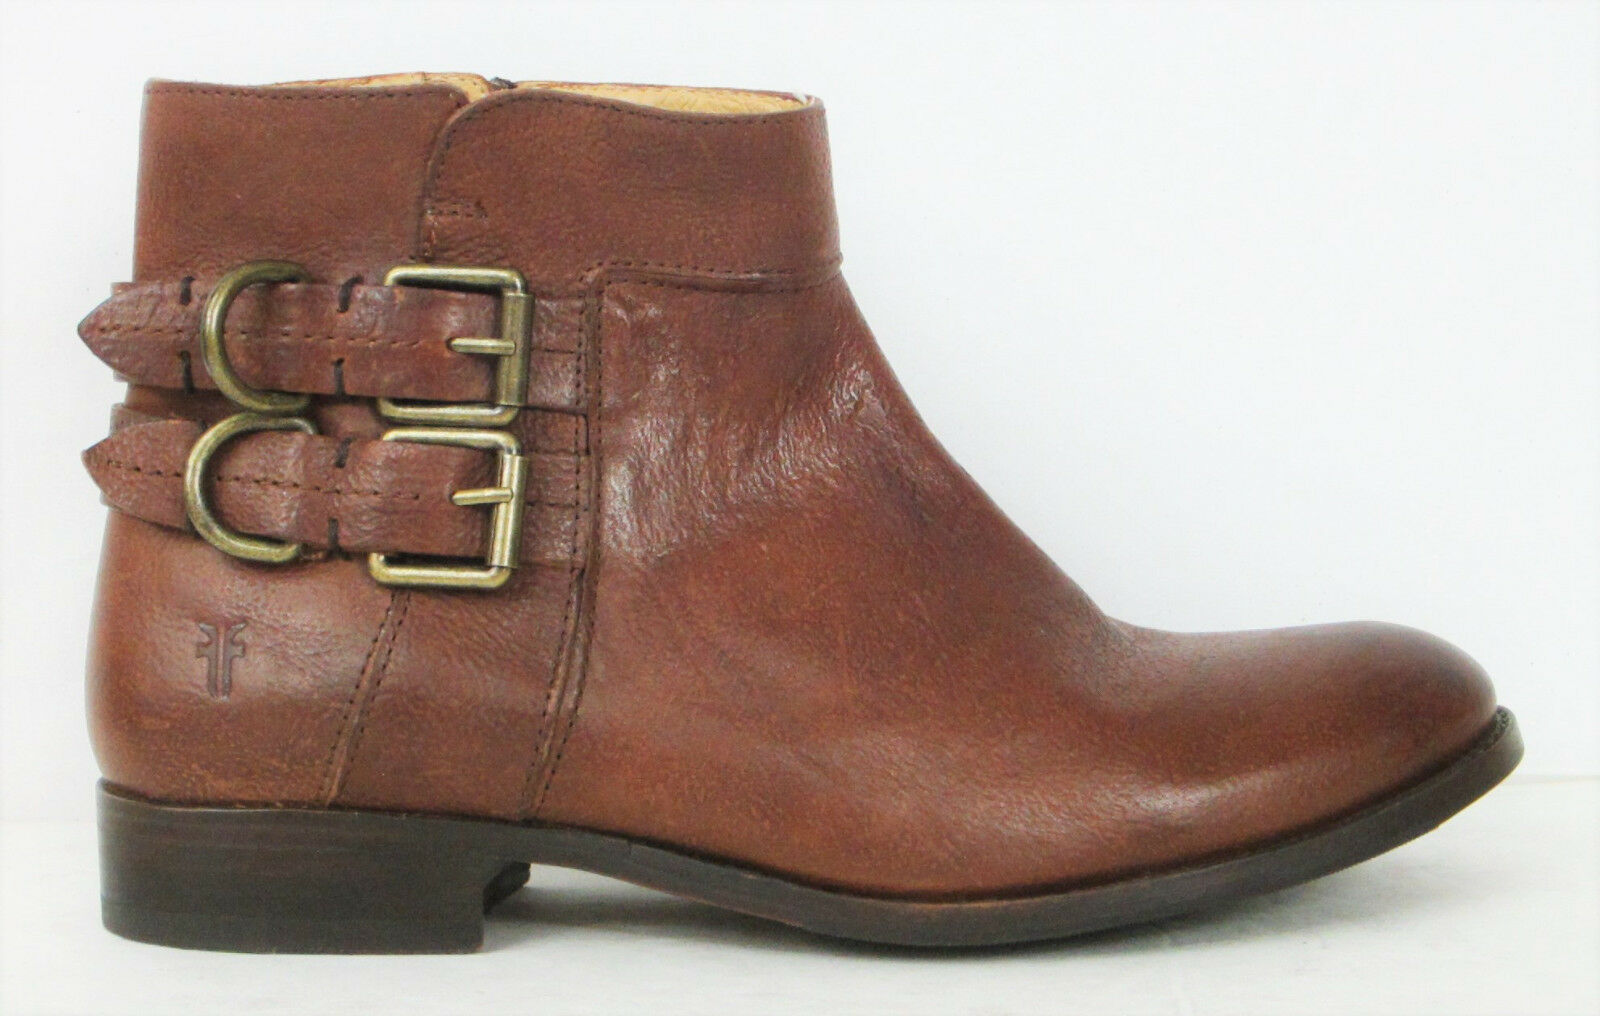 FRYE BOOTS Molly D Ring Short Copper Calf Leather Boots 72102 SZ 8.5  348